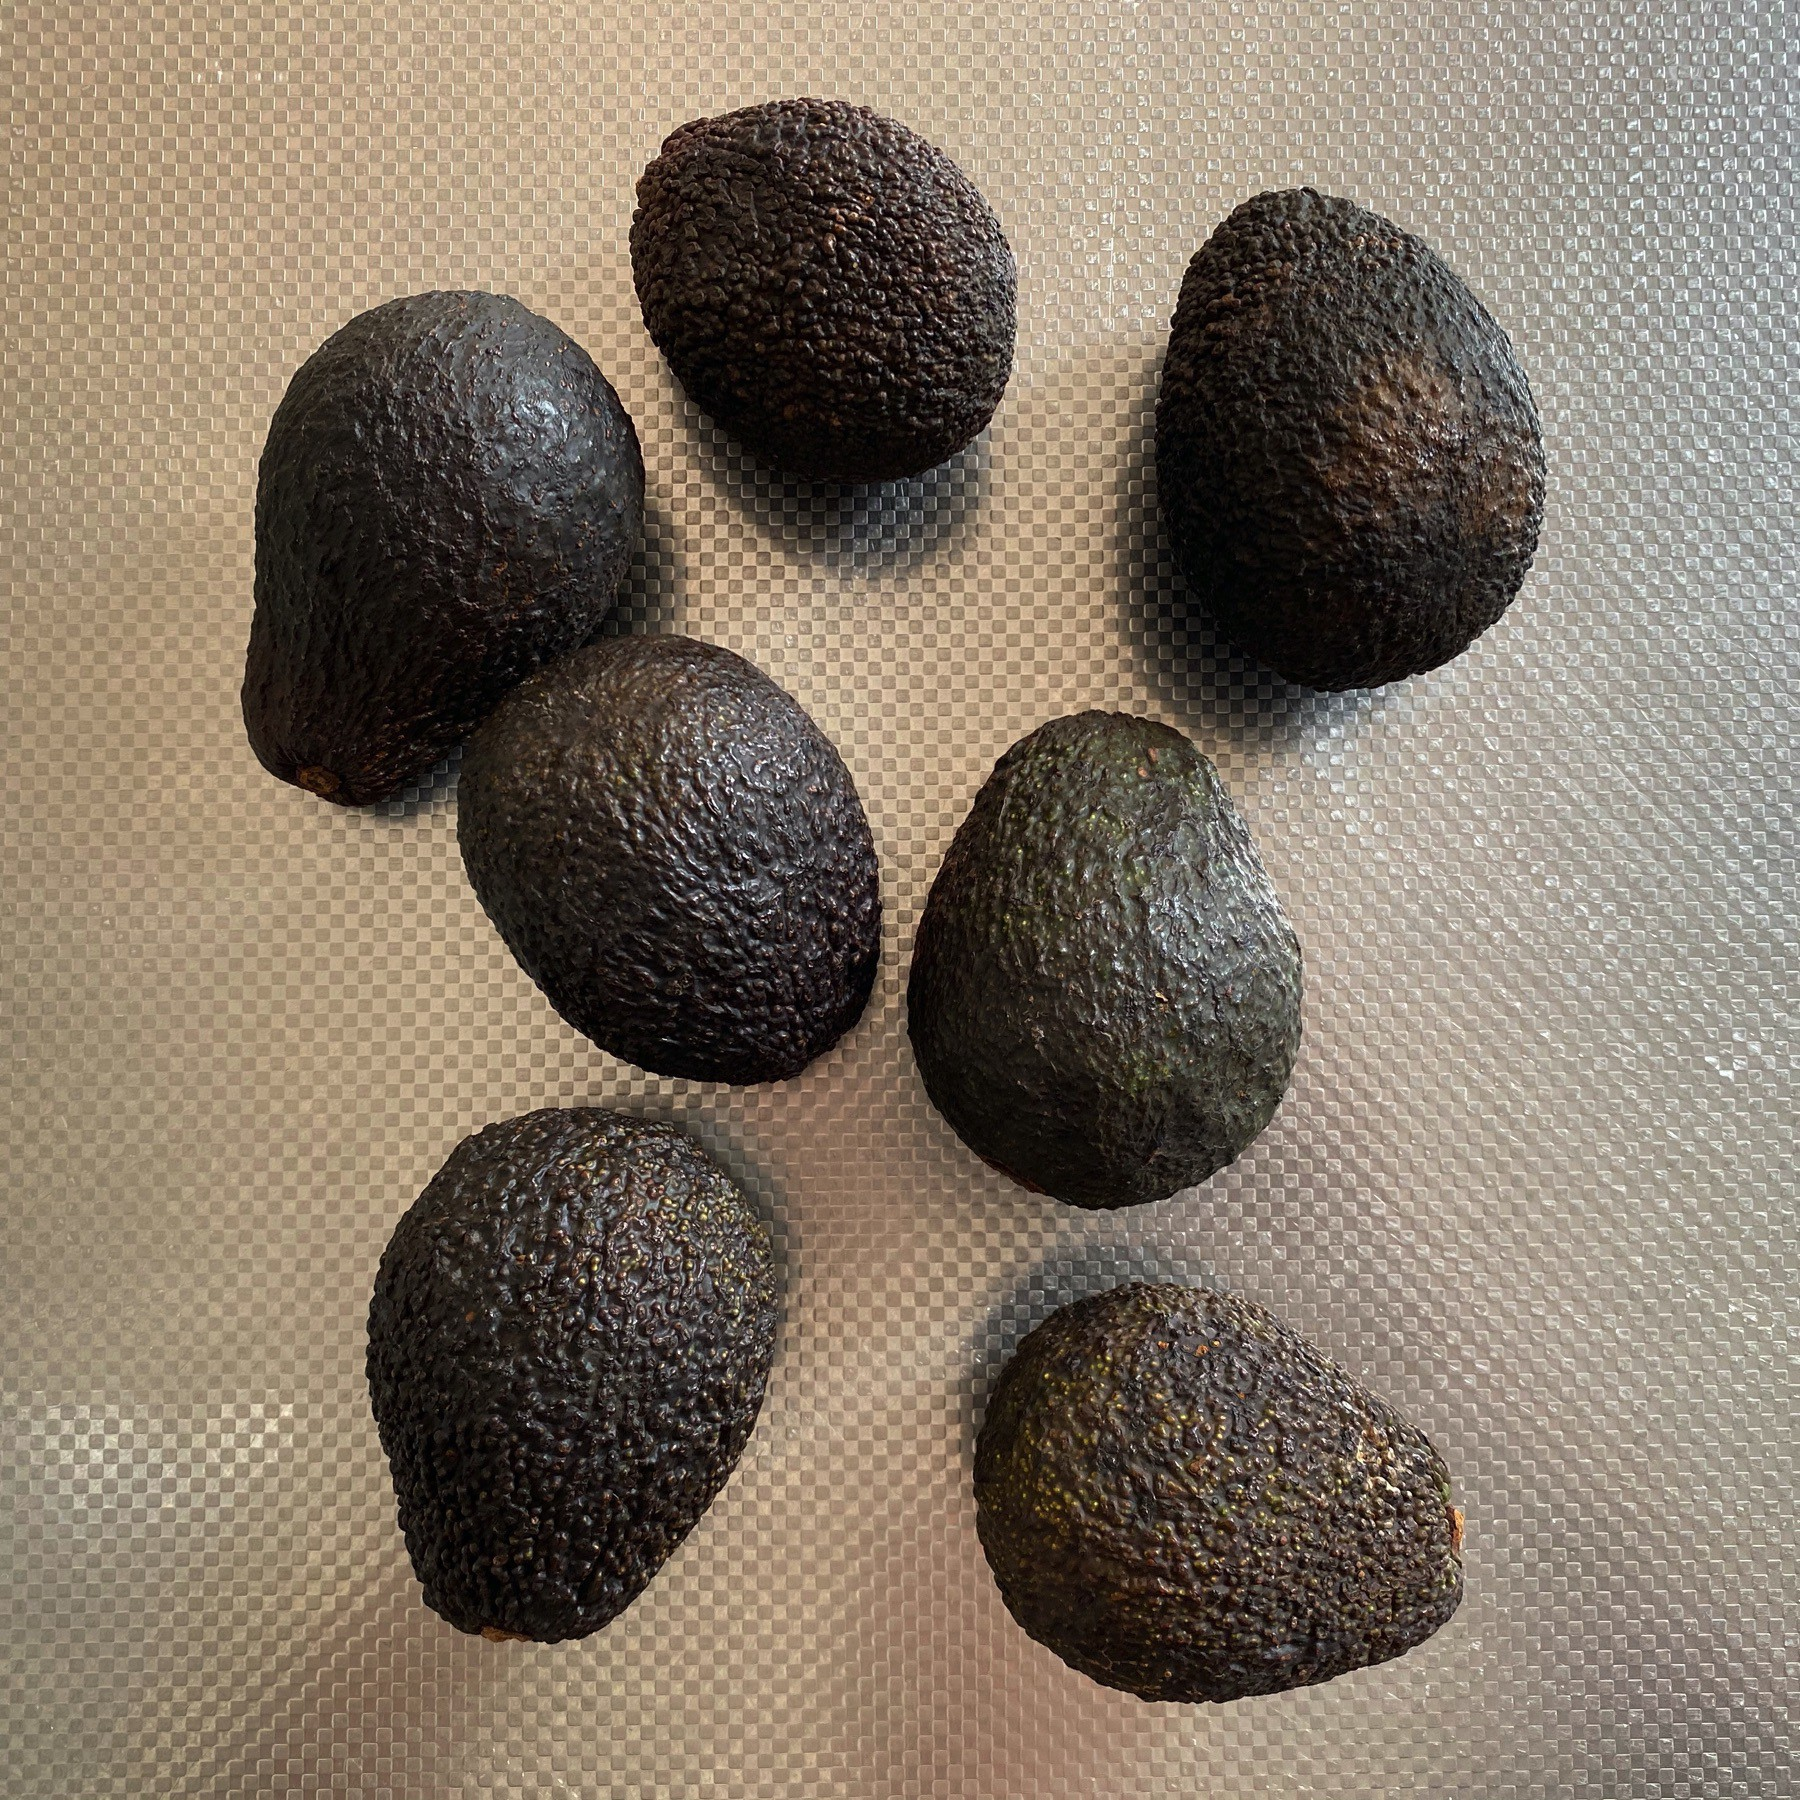 Seven Avocados Waiting To Be Eaten.